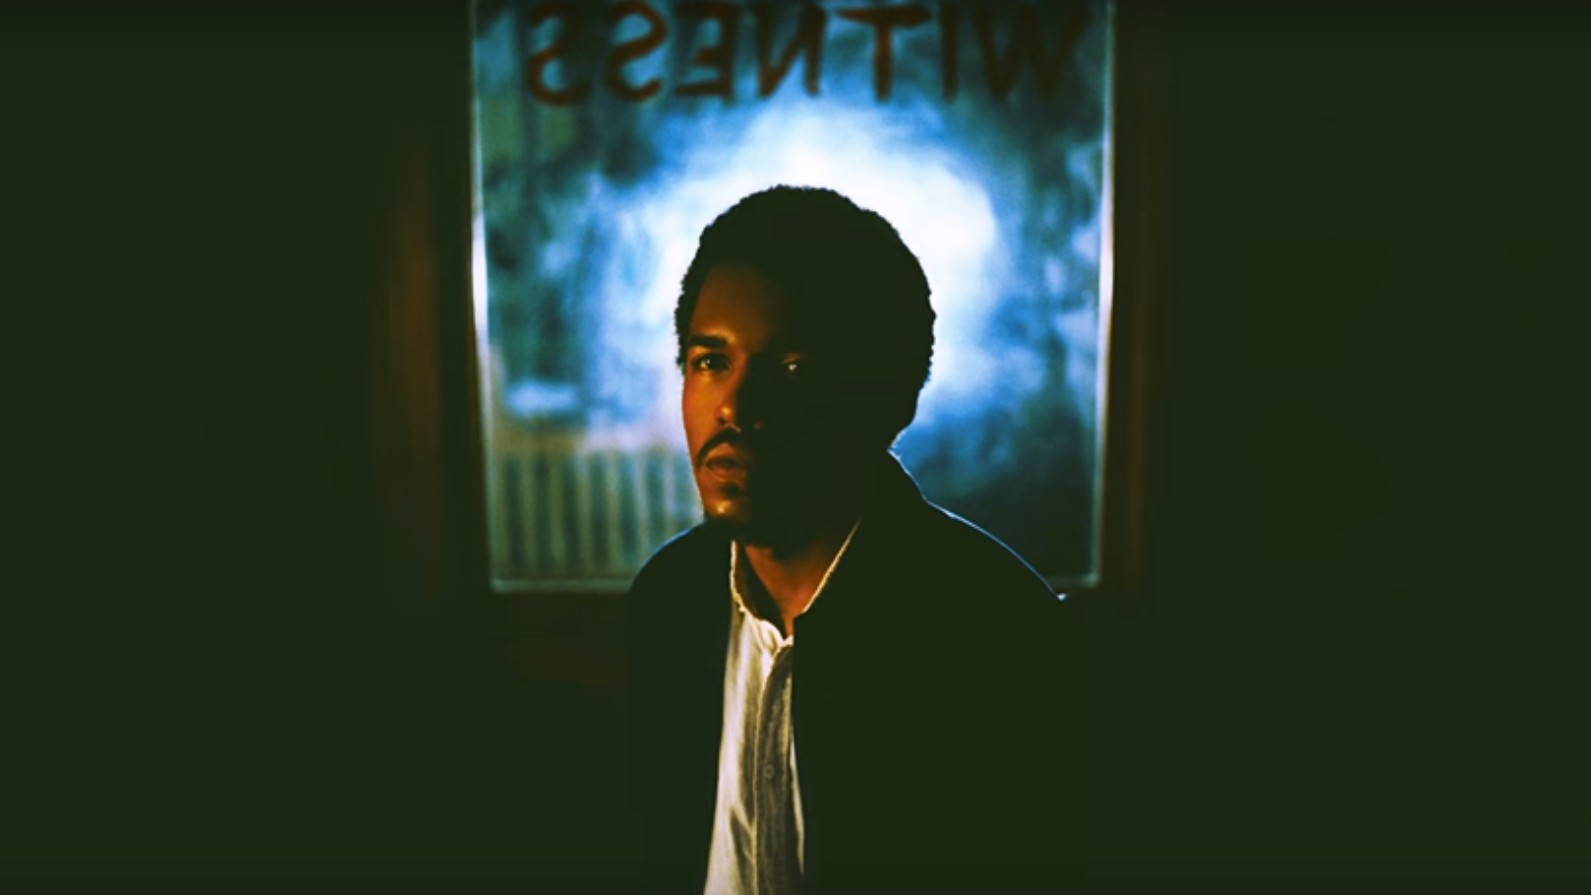 witness essay benjamin booker makes stunning return mavis staples  benjamin booker makes stunning return mavis staples on rented an apartment near juarez and tried to